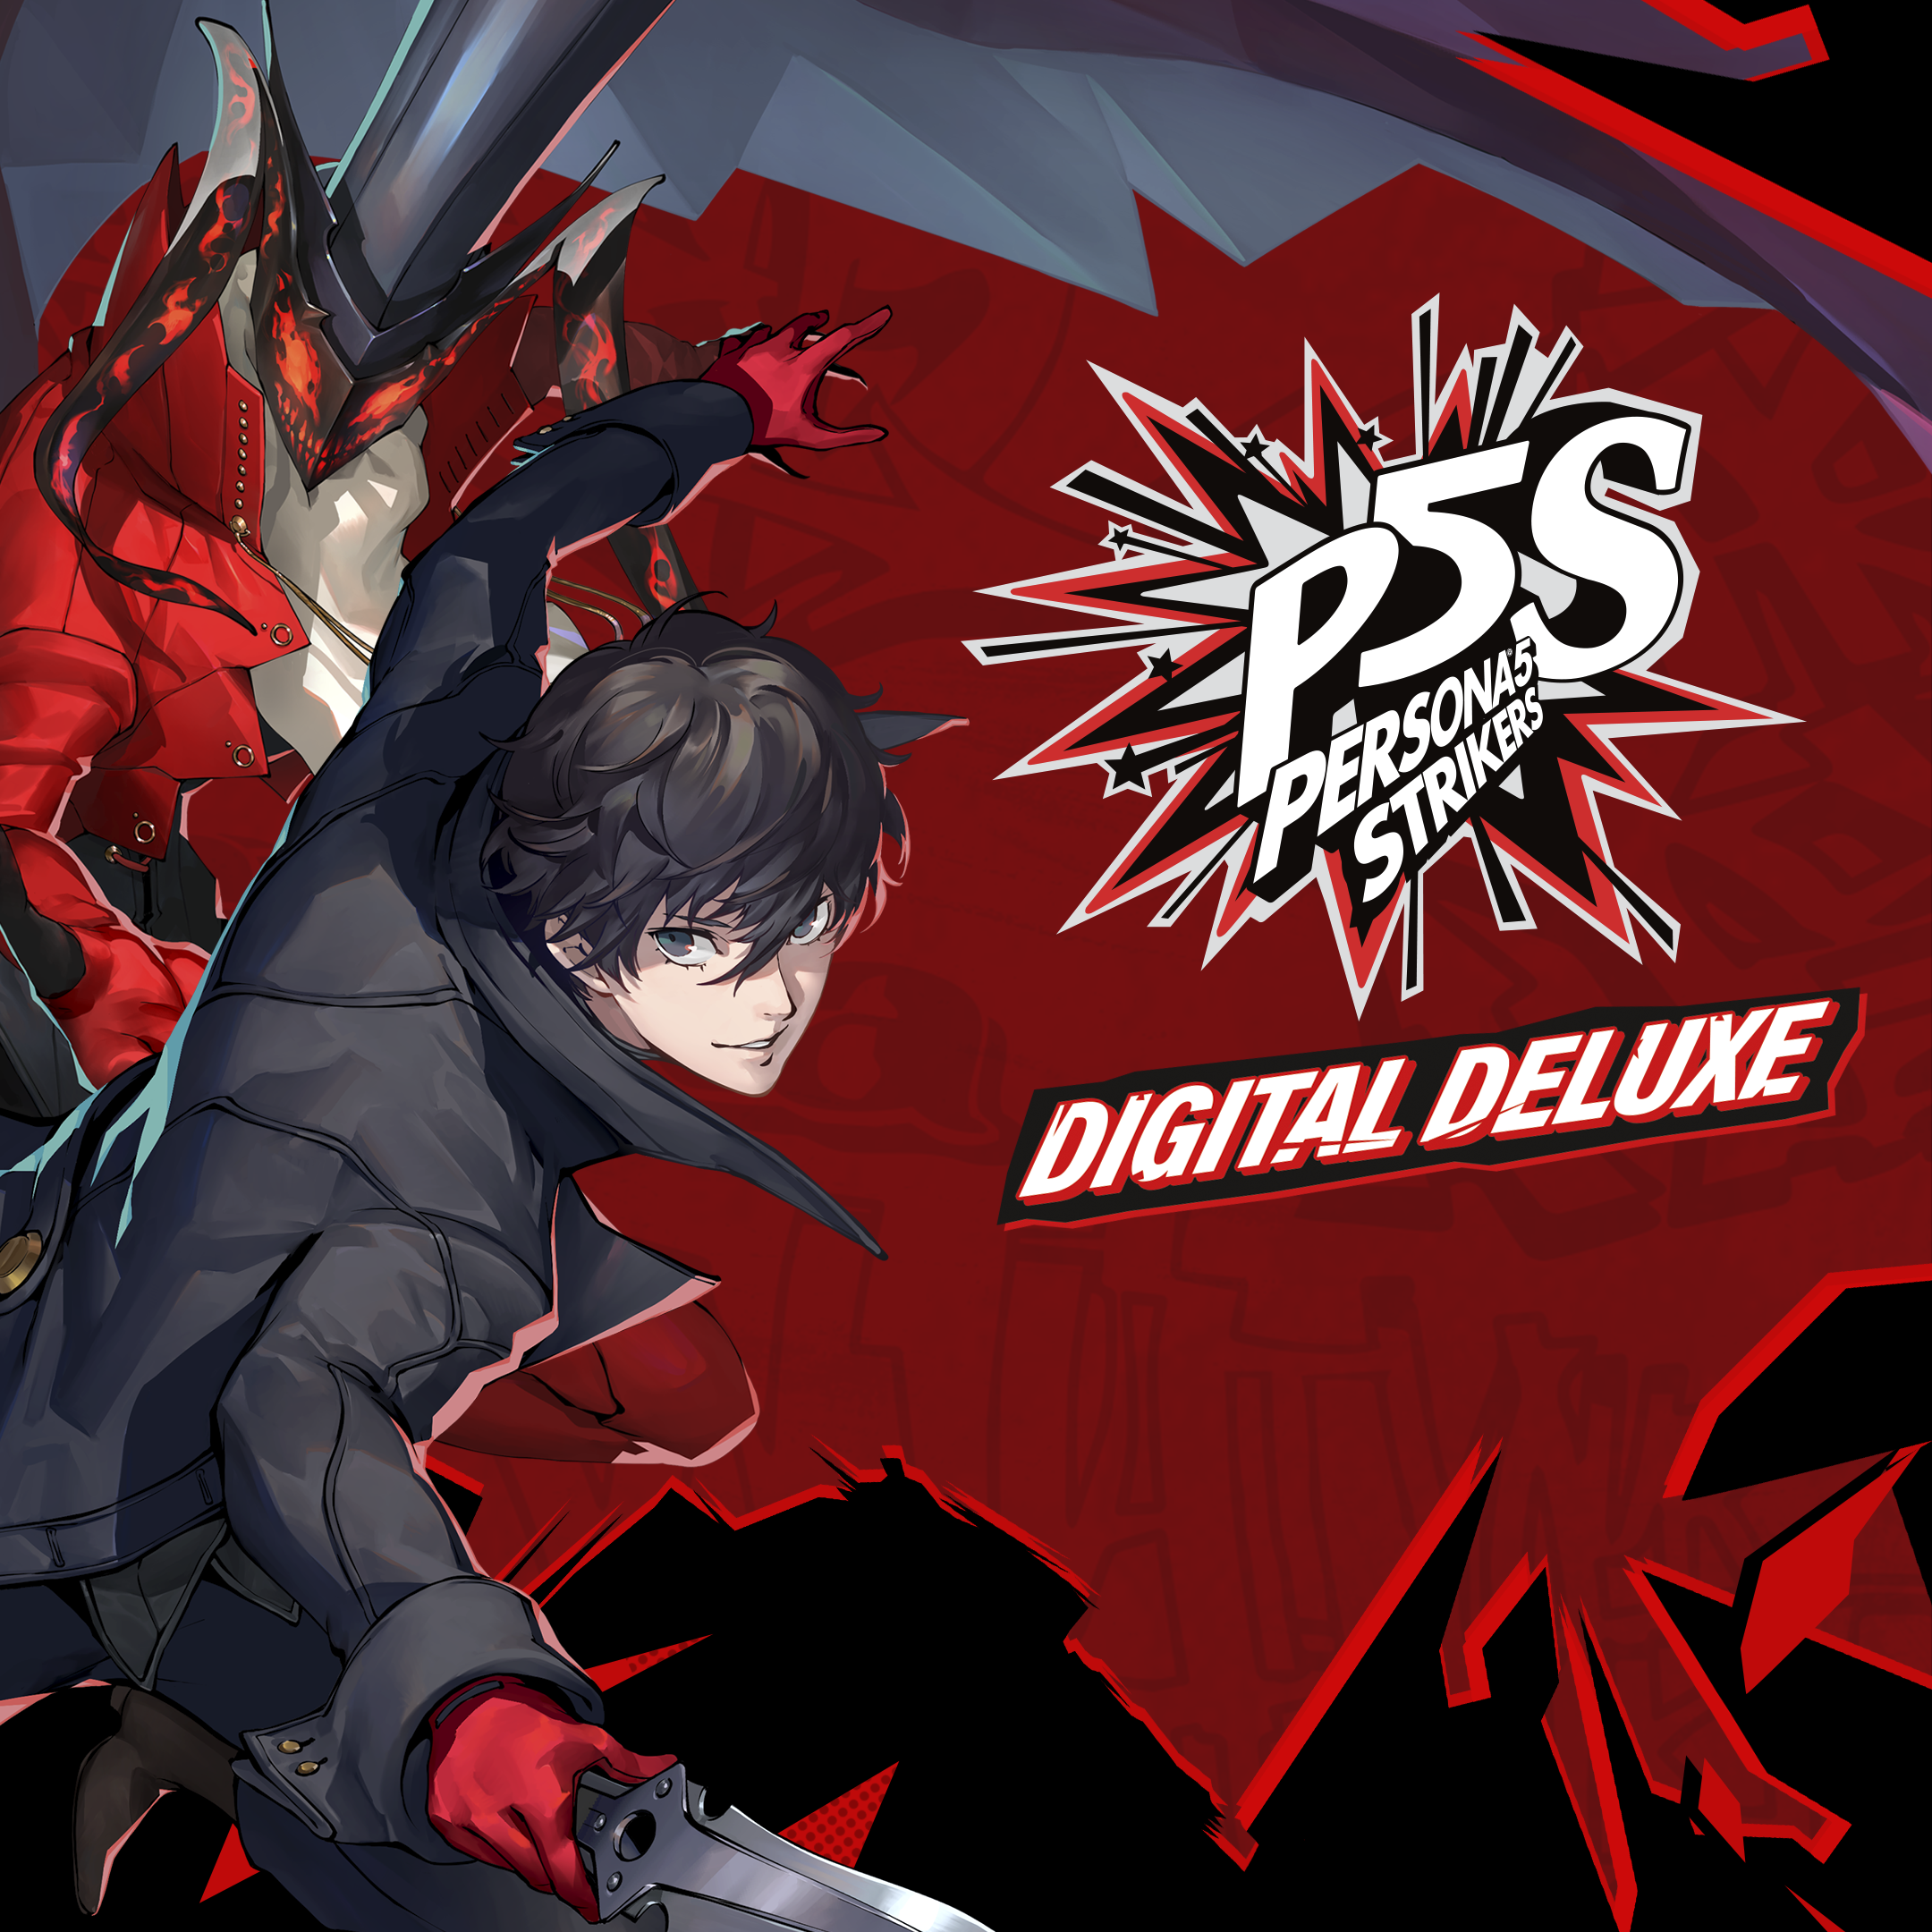 Persona 5 STRIKERS - Digital Deluxe Edition arte de tienda